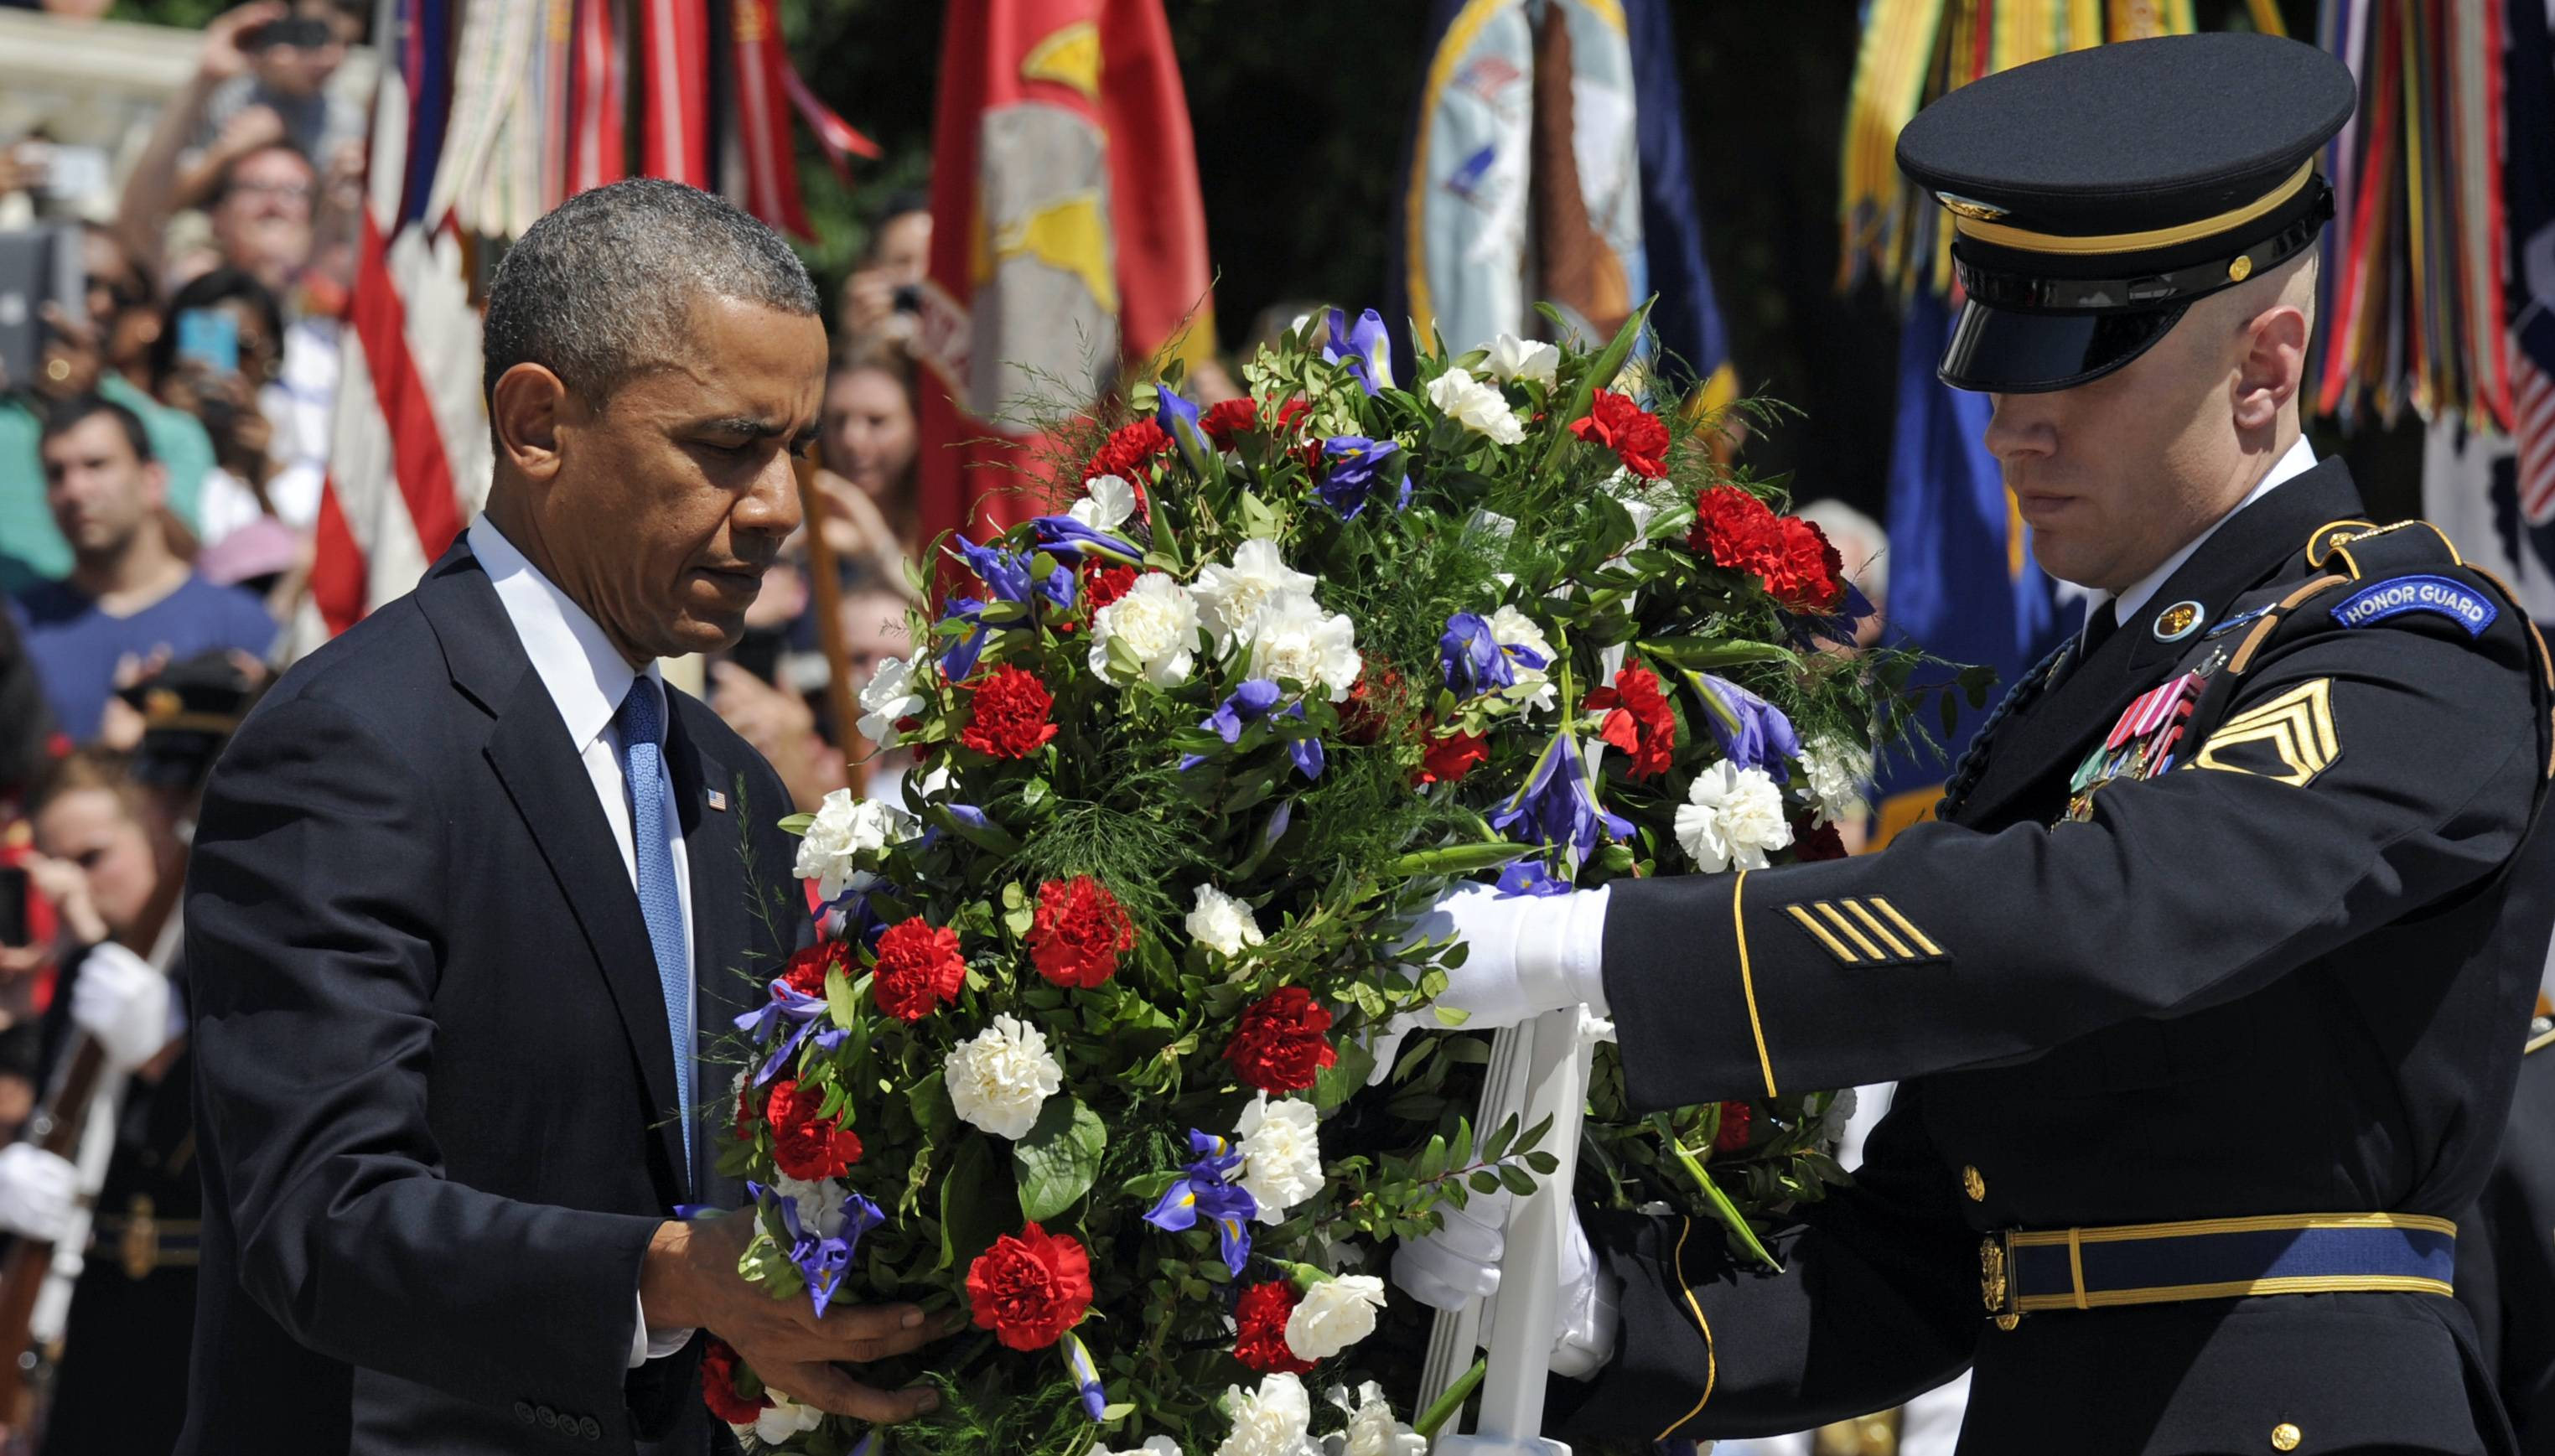 President Barack Obama lays a wreath at the Tomb of the Unknowns at Arlington National Cemetery in Arlington, Va., Monday, May 26, 2014.   President Obama is leading the nation in remembering its war heroes, the fallen and those still defending the flag, in a Memorial Day tribute.